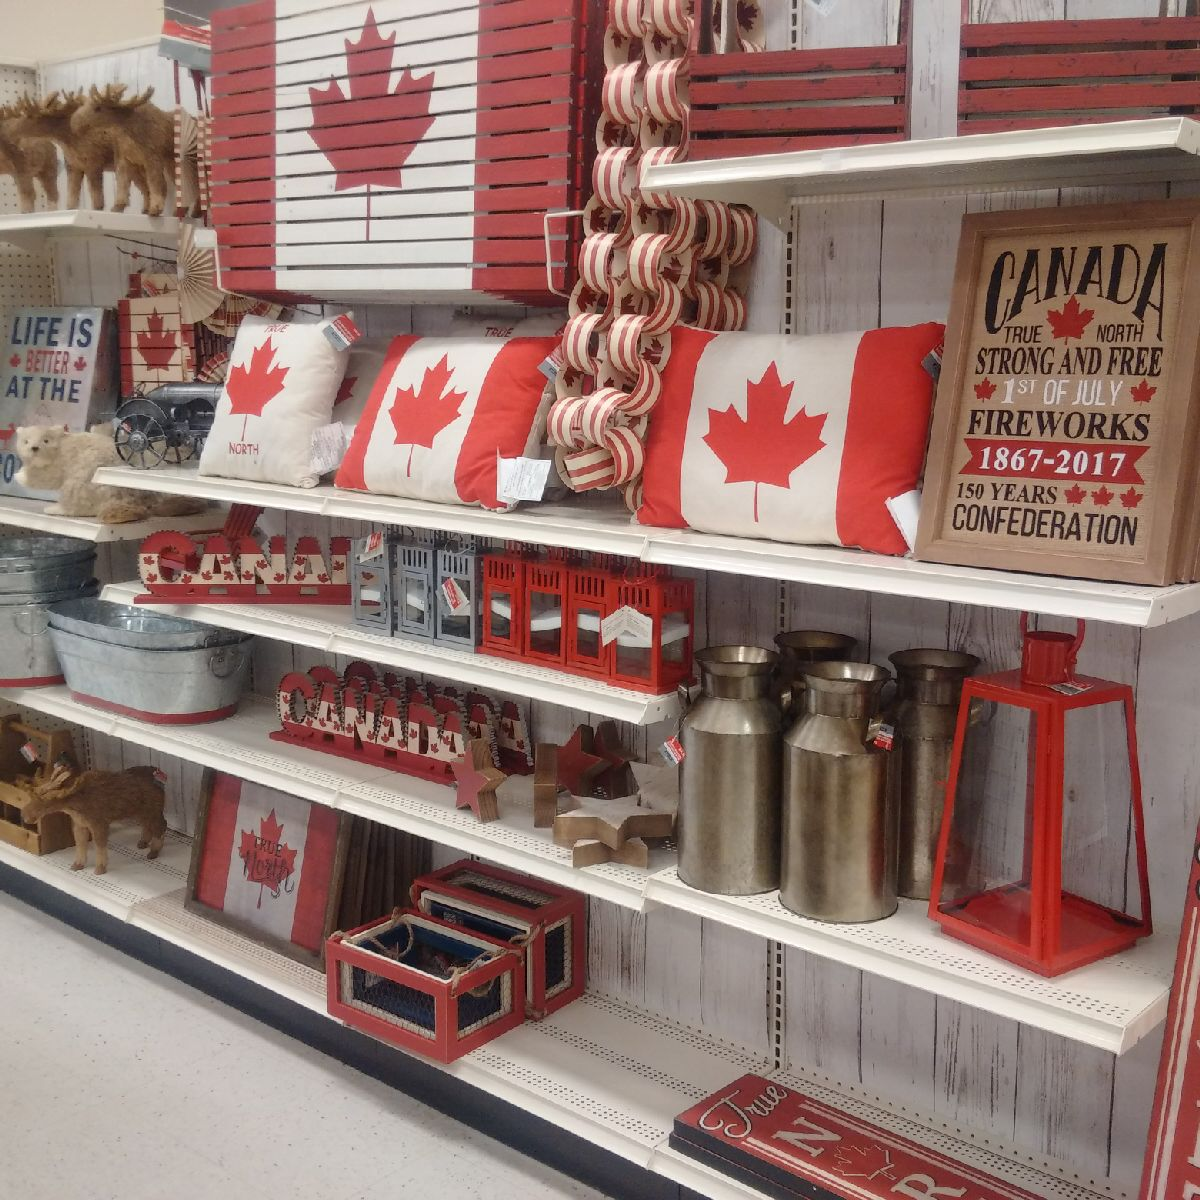 michaels canada day display